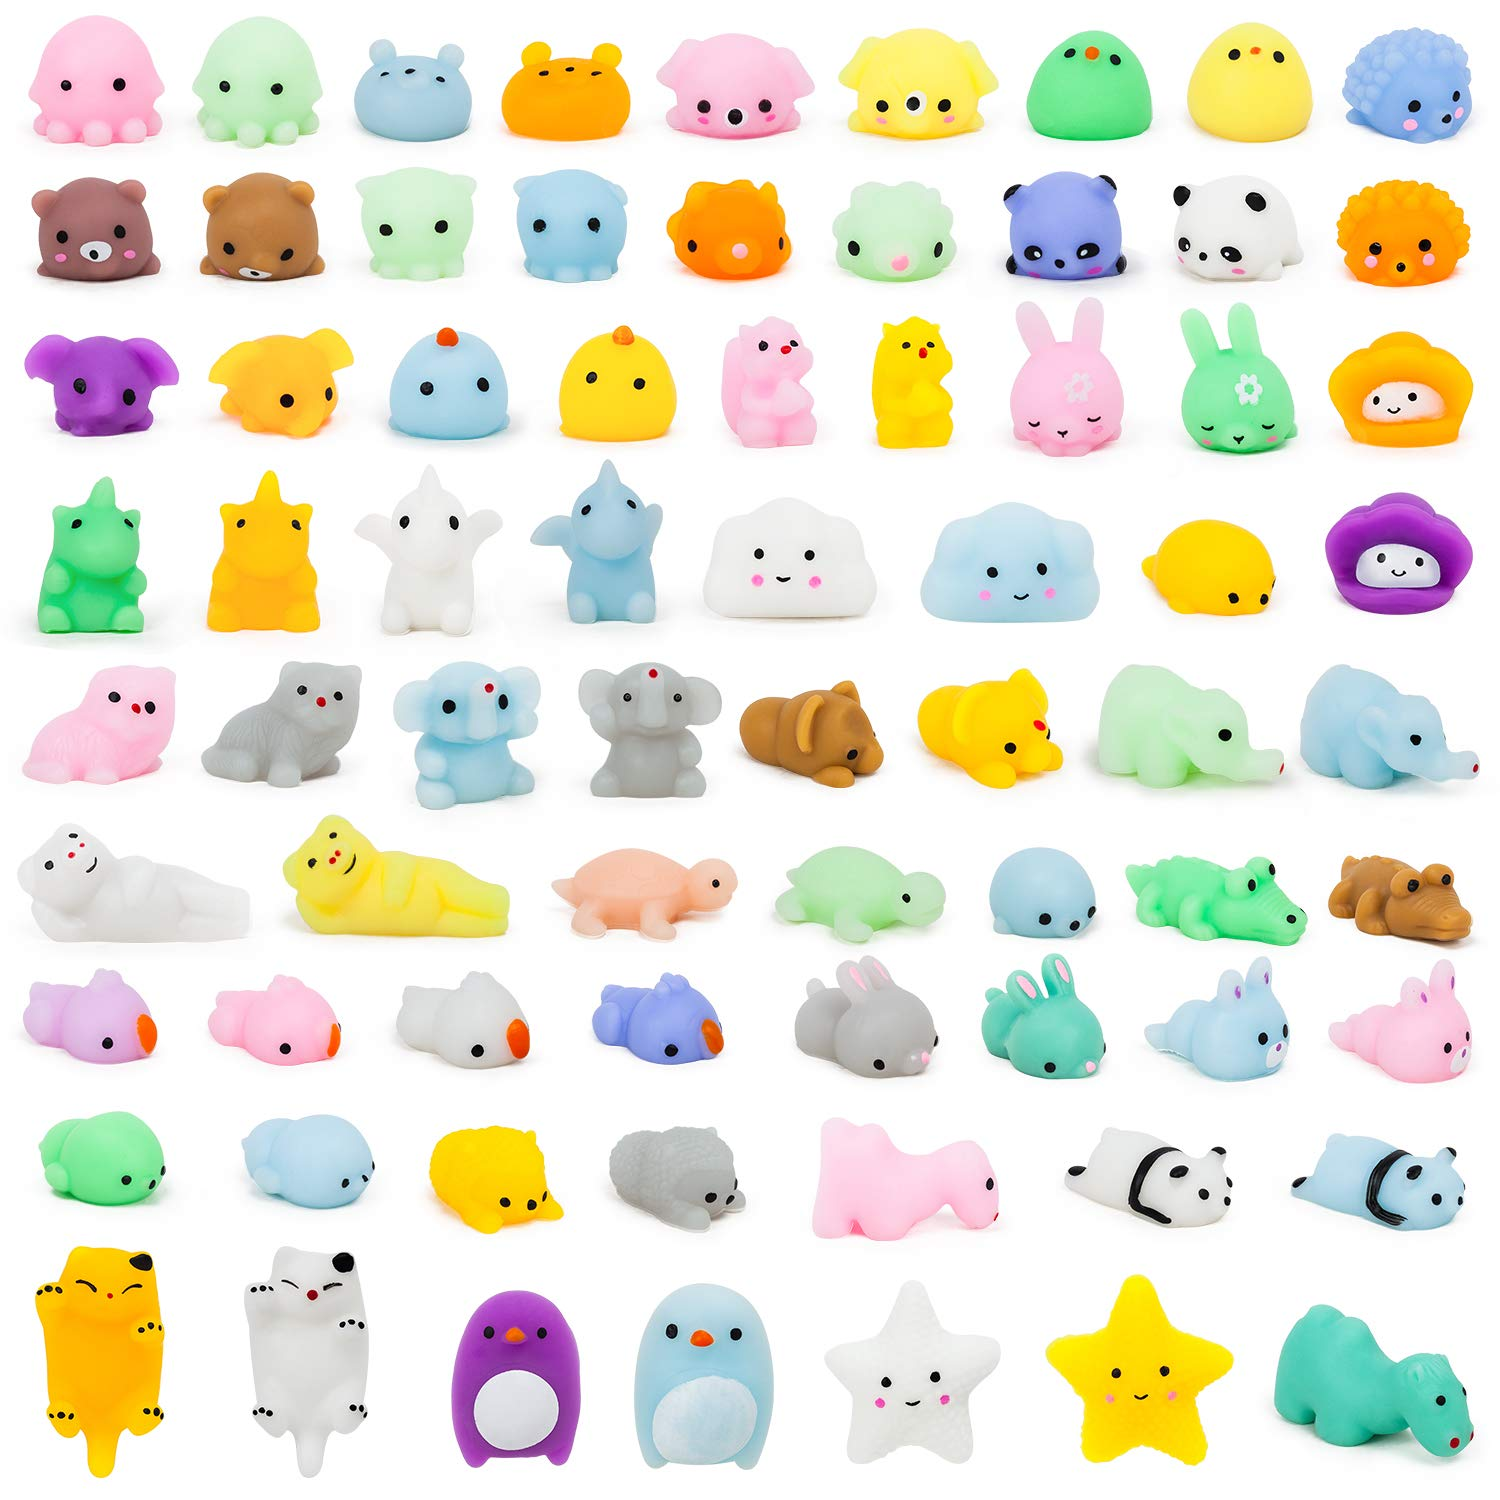 YIHONG 72 Pcs Kawaii Squishies, Mochi Squishy Toys for Kids Party Favors,Mini Stress Relief Toys for Easter Party Favors,Birthday Gift,Classroom Prize,Goodie Bag